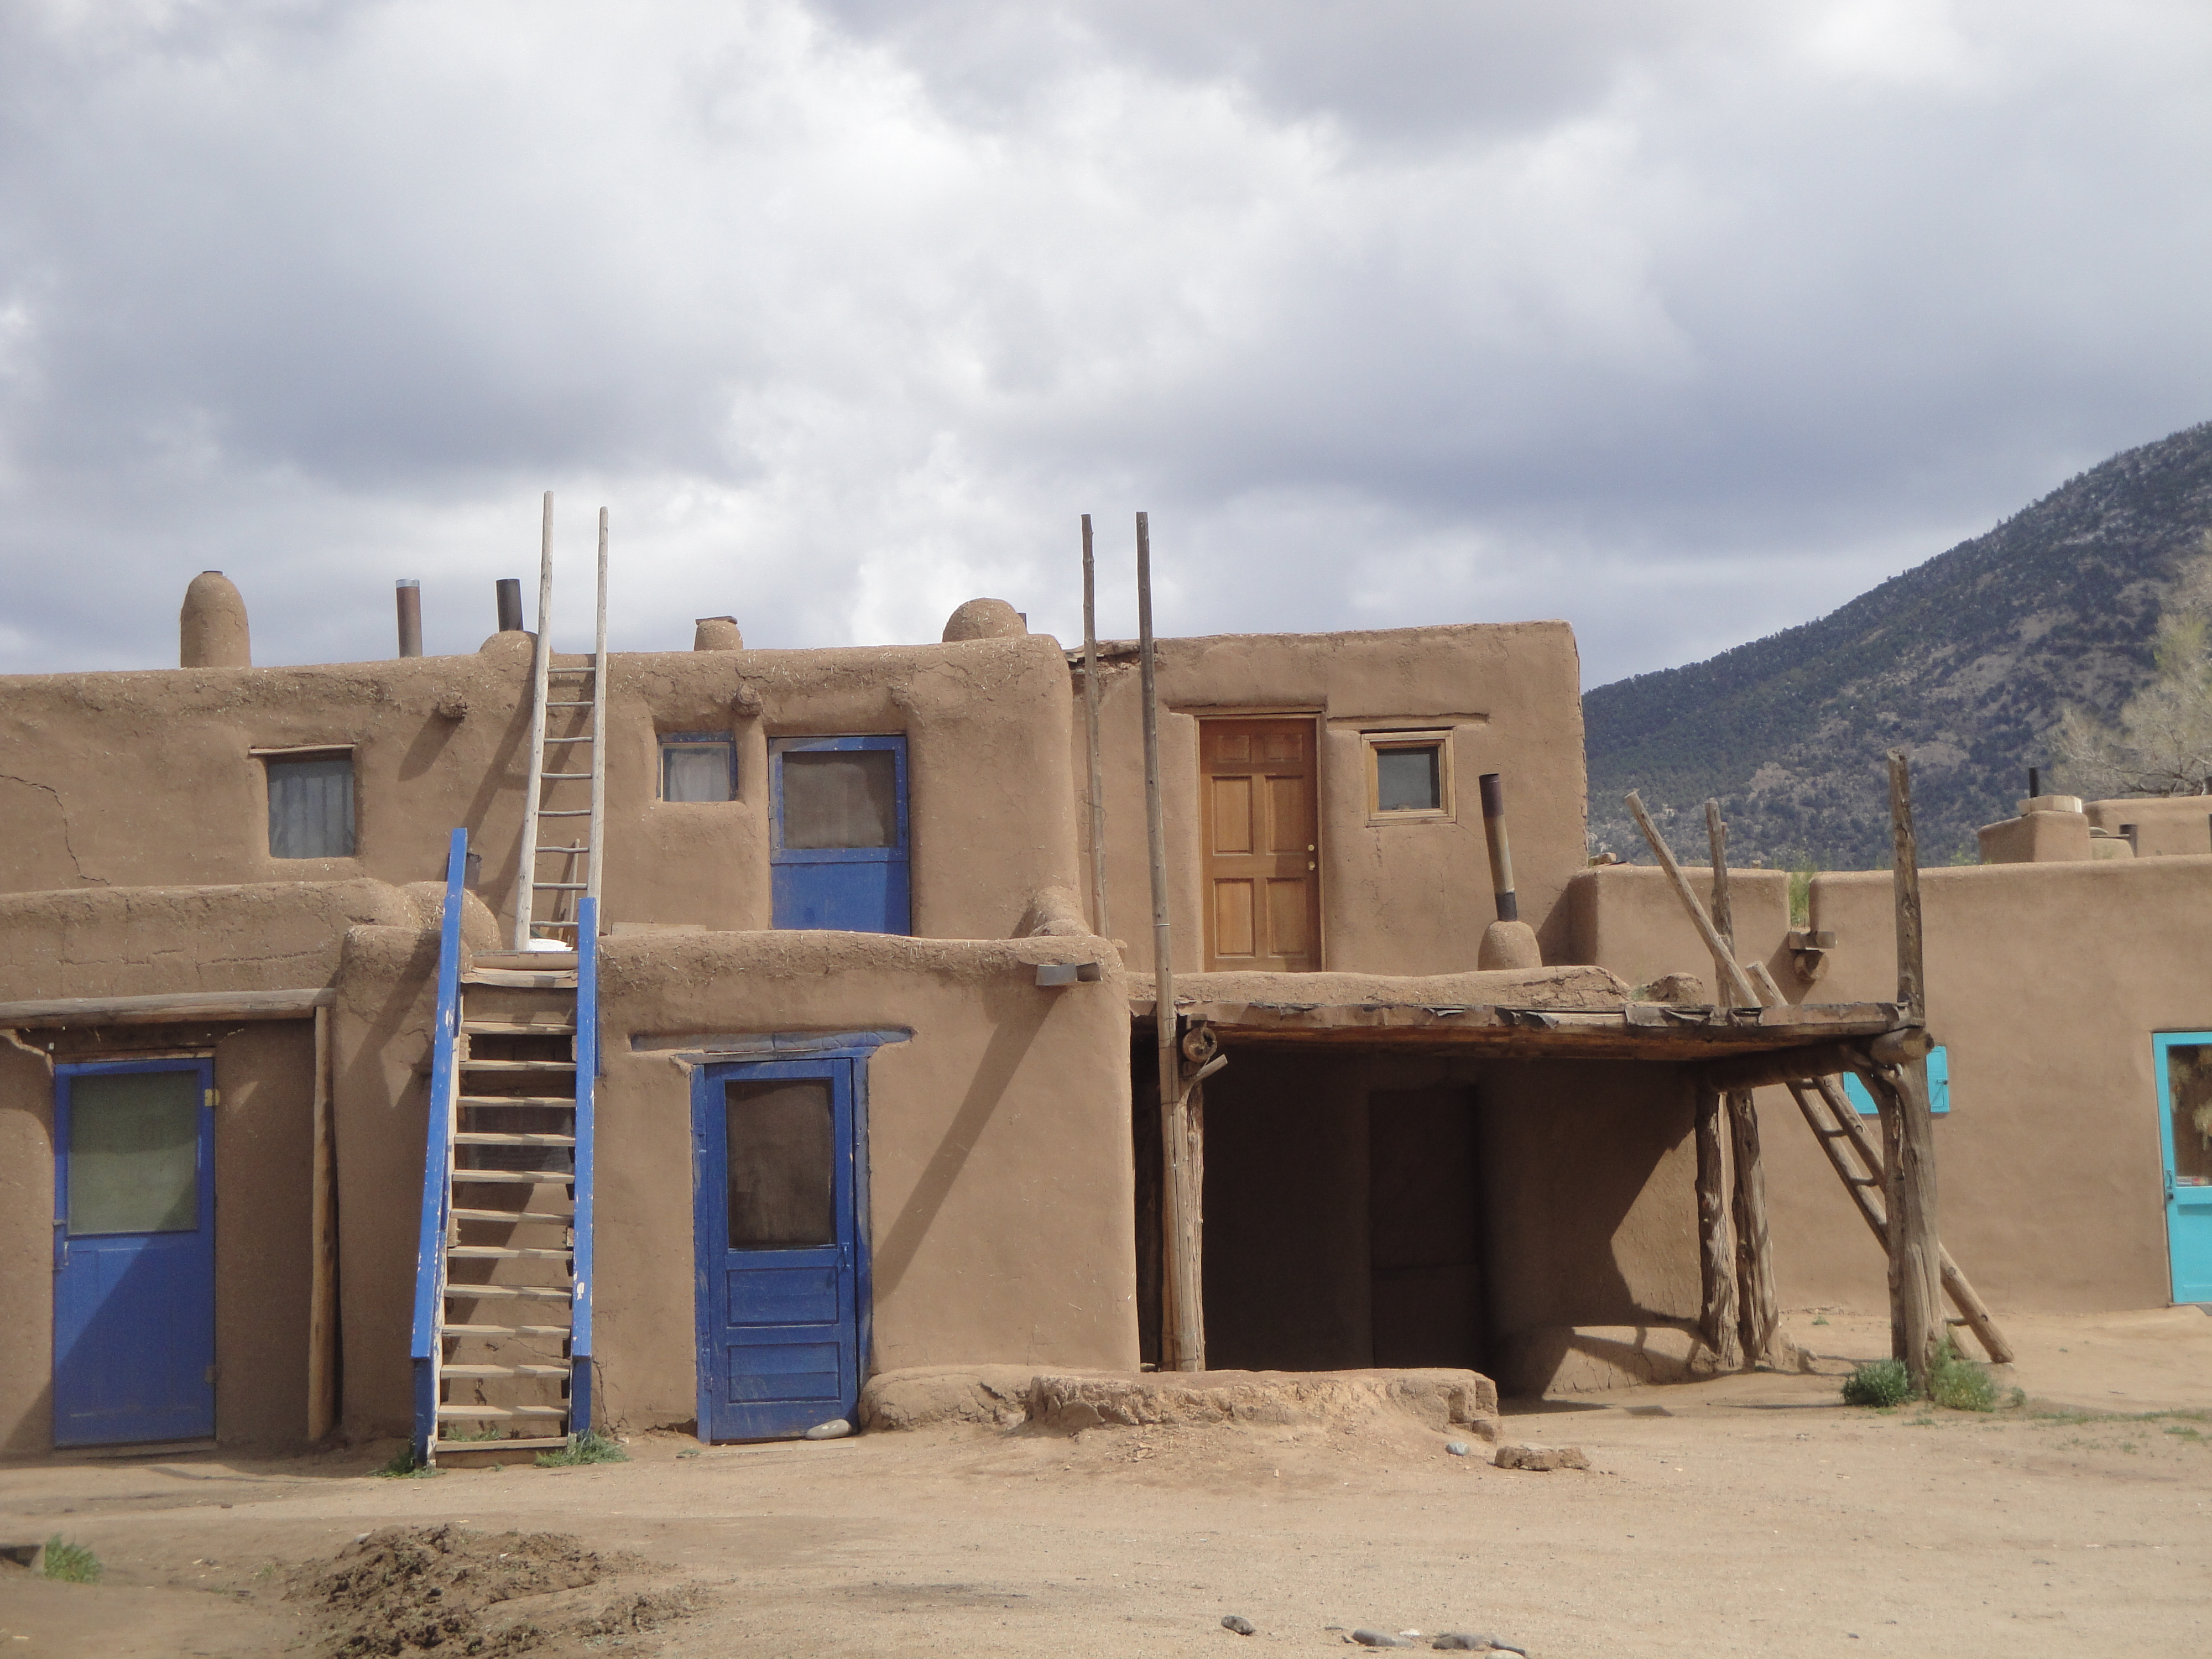 100 adobe pueblo houses remodeling projects for your pueblo revival home discover new - Pueblo adobe houses property ...